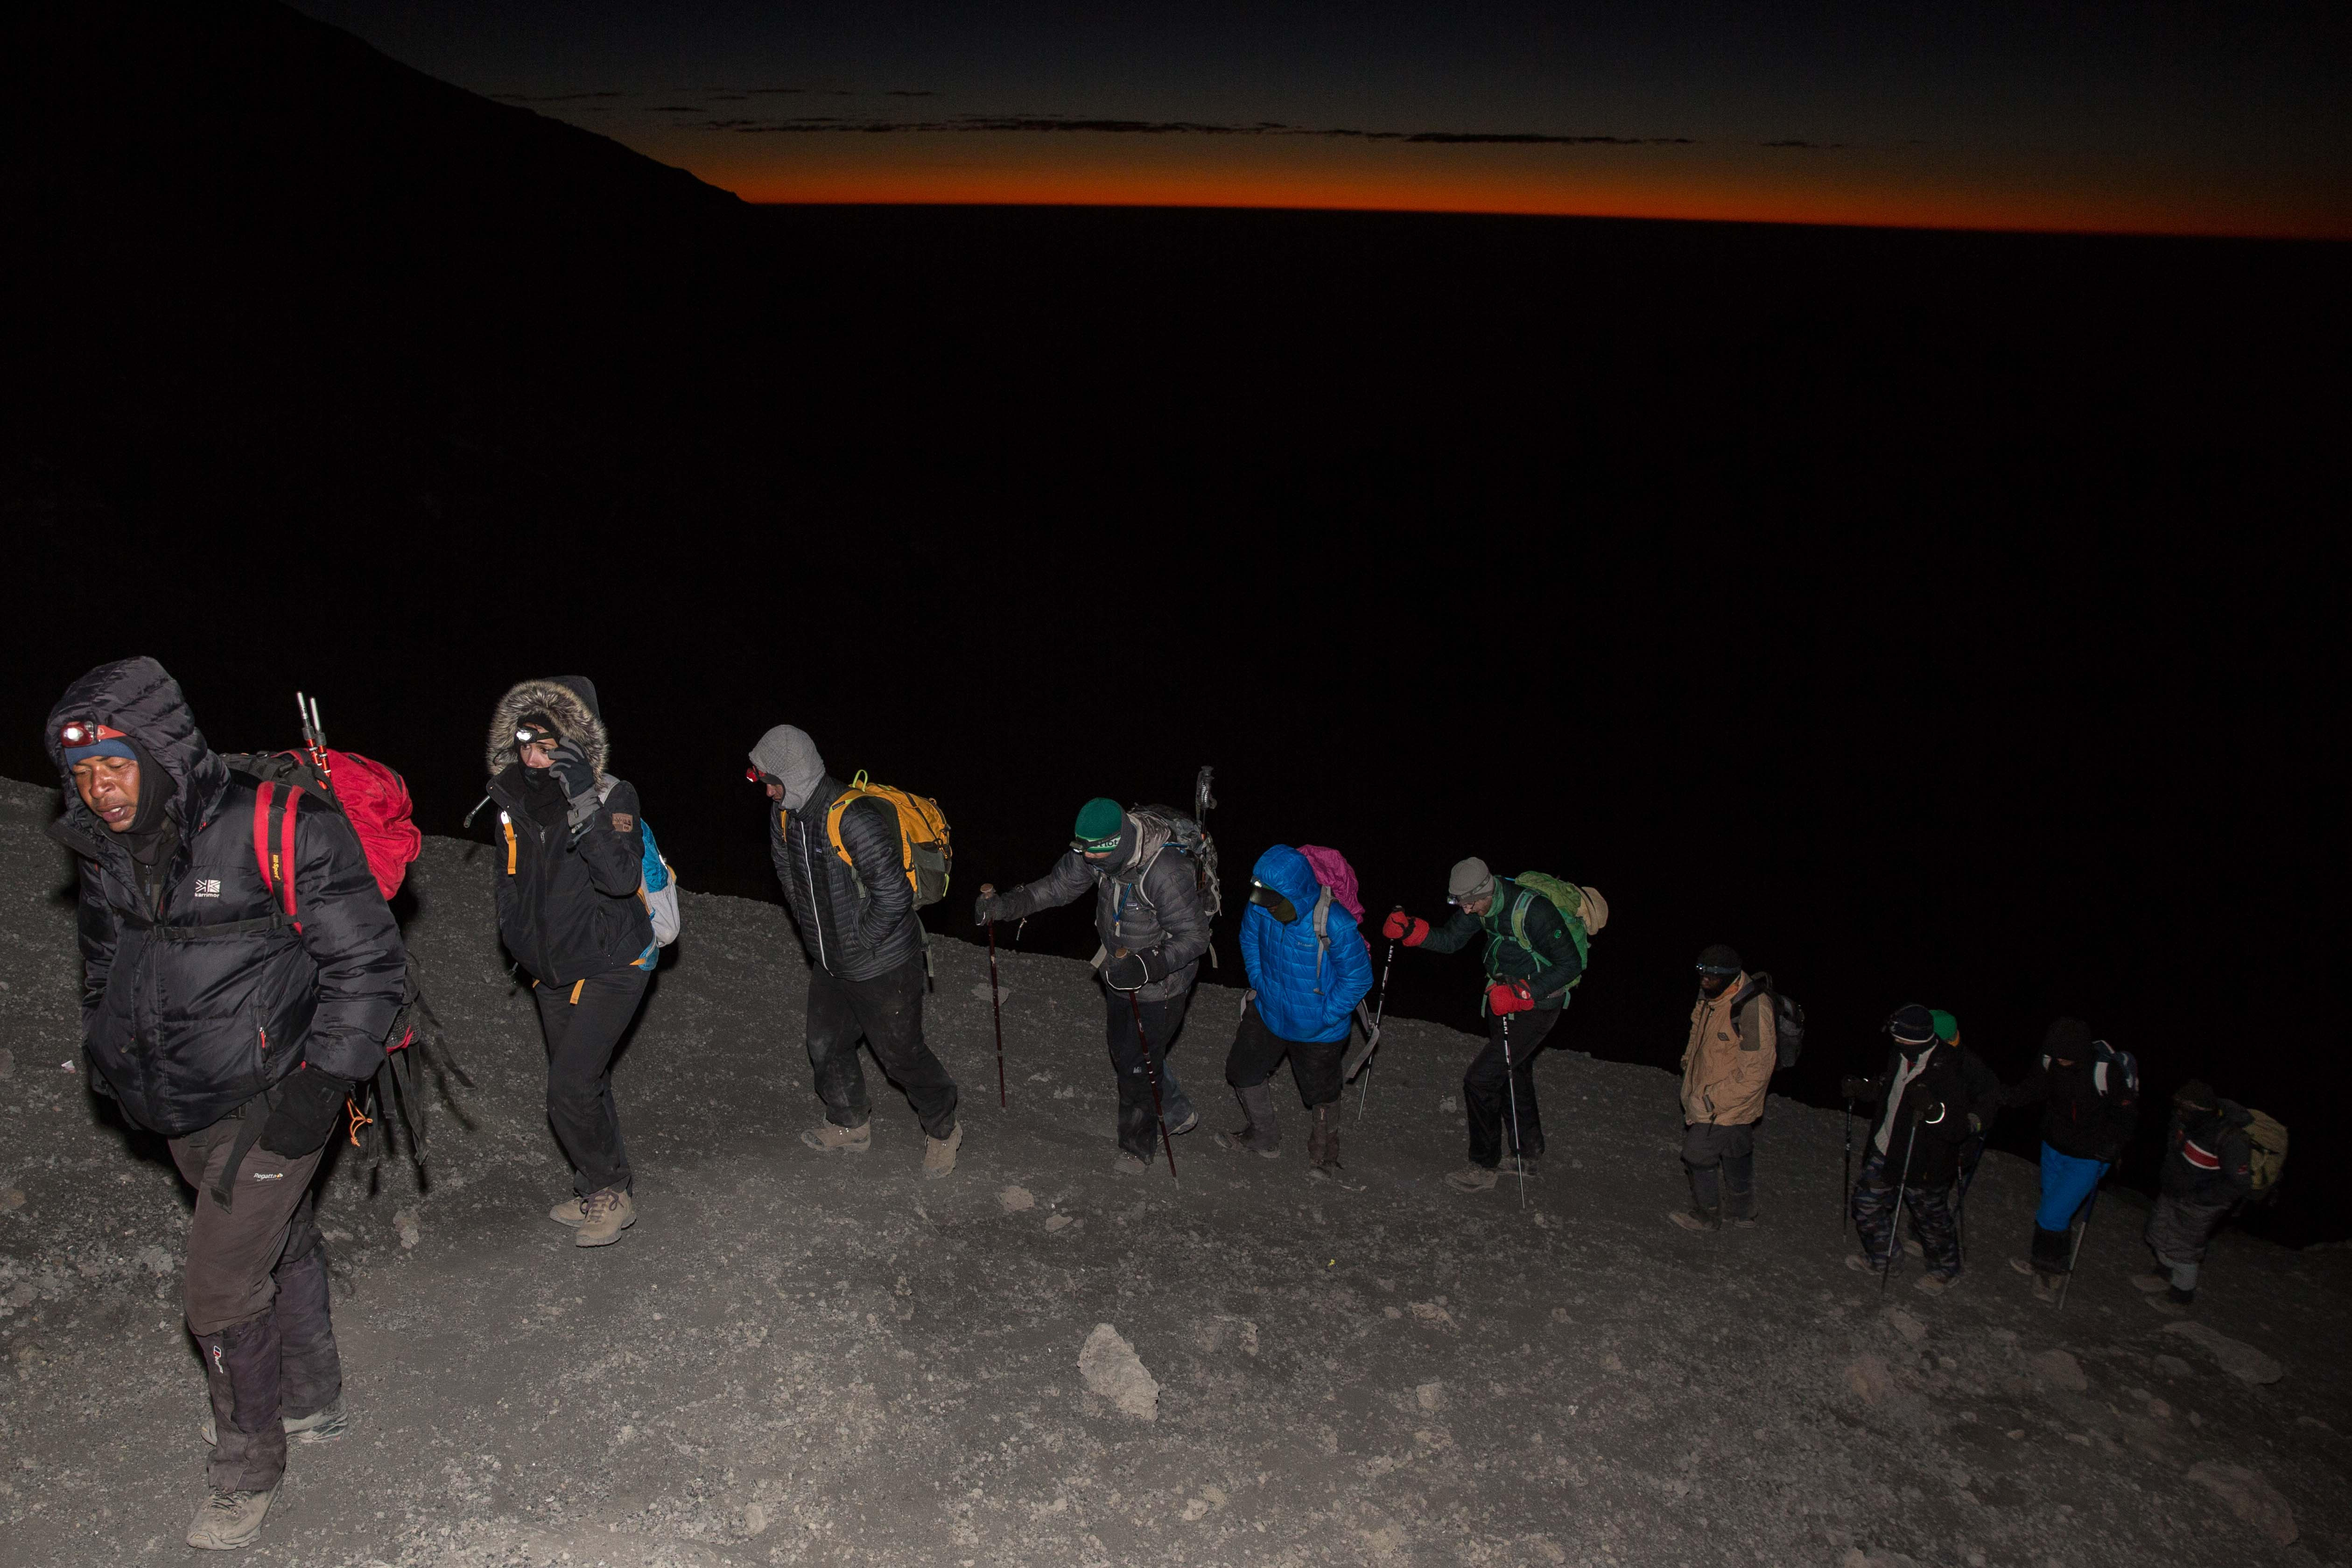 Barafu Camp (15.100ft/4.600m) to Uhuru Peak (19.340ft/5.895m) down to Mweka Camp (10.170ft/3.100m)